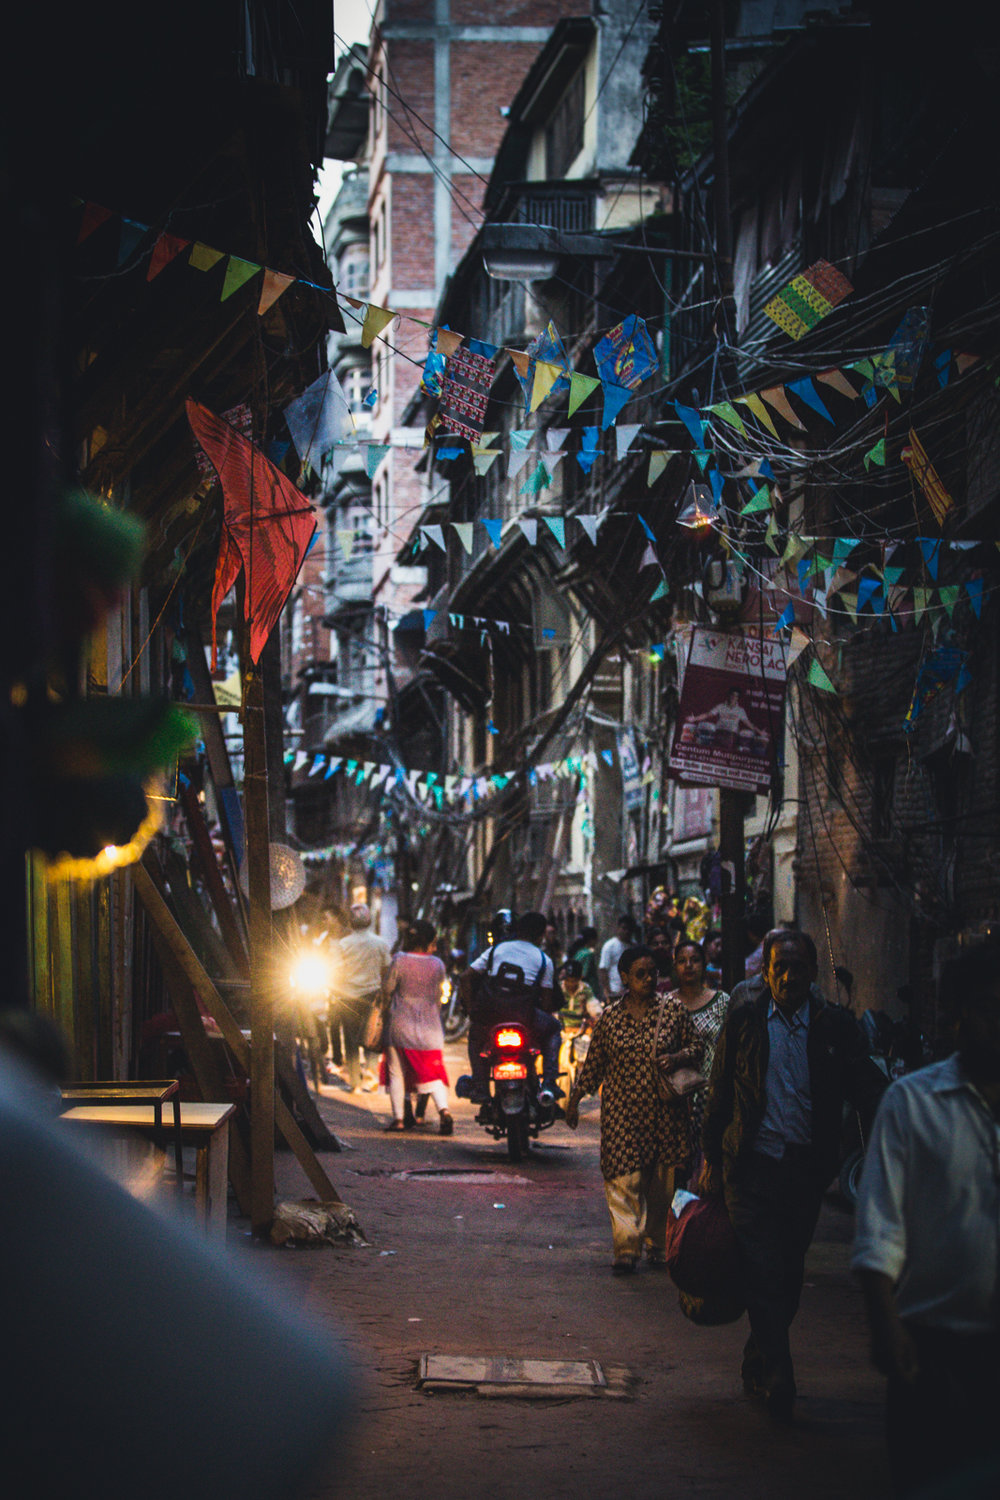 Shared paths through Thamel, Kathmandu.  70mm f2.8 1/50 ISO3200